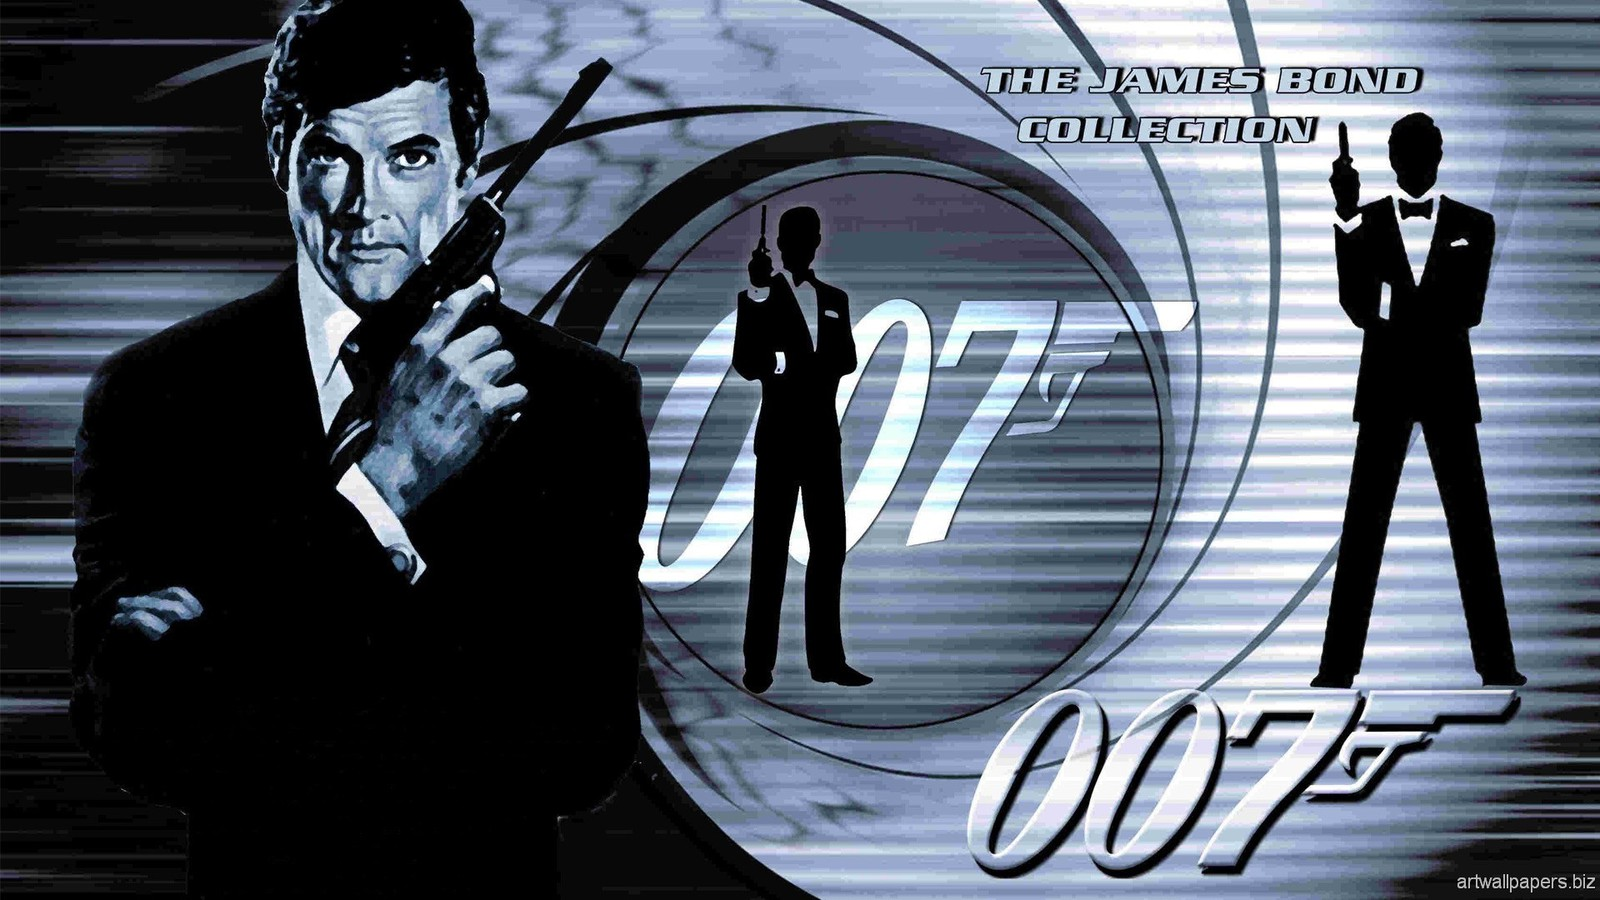 007 james bond wallpaper 7331 pc en - James bond images hd ...